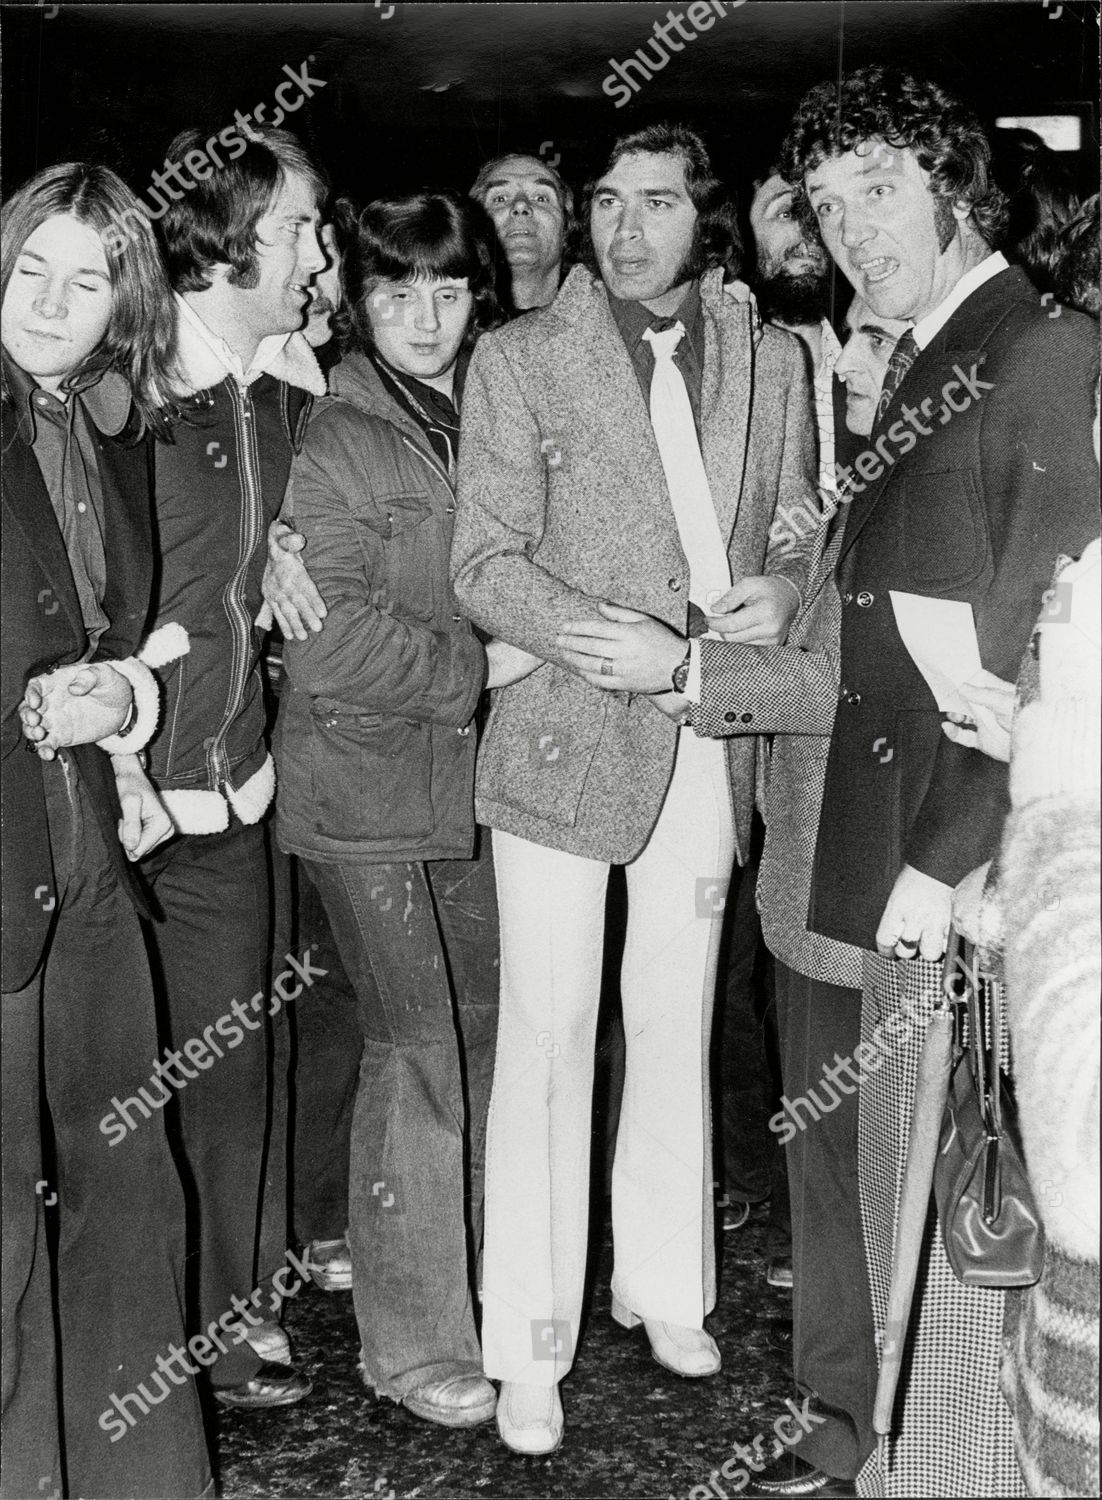 Stock photo of Engelbert Humperdinck Singer Outside The London Palladium After A Bomb Scare Hoax Which Cancelled Sunday Night At The London Palladium